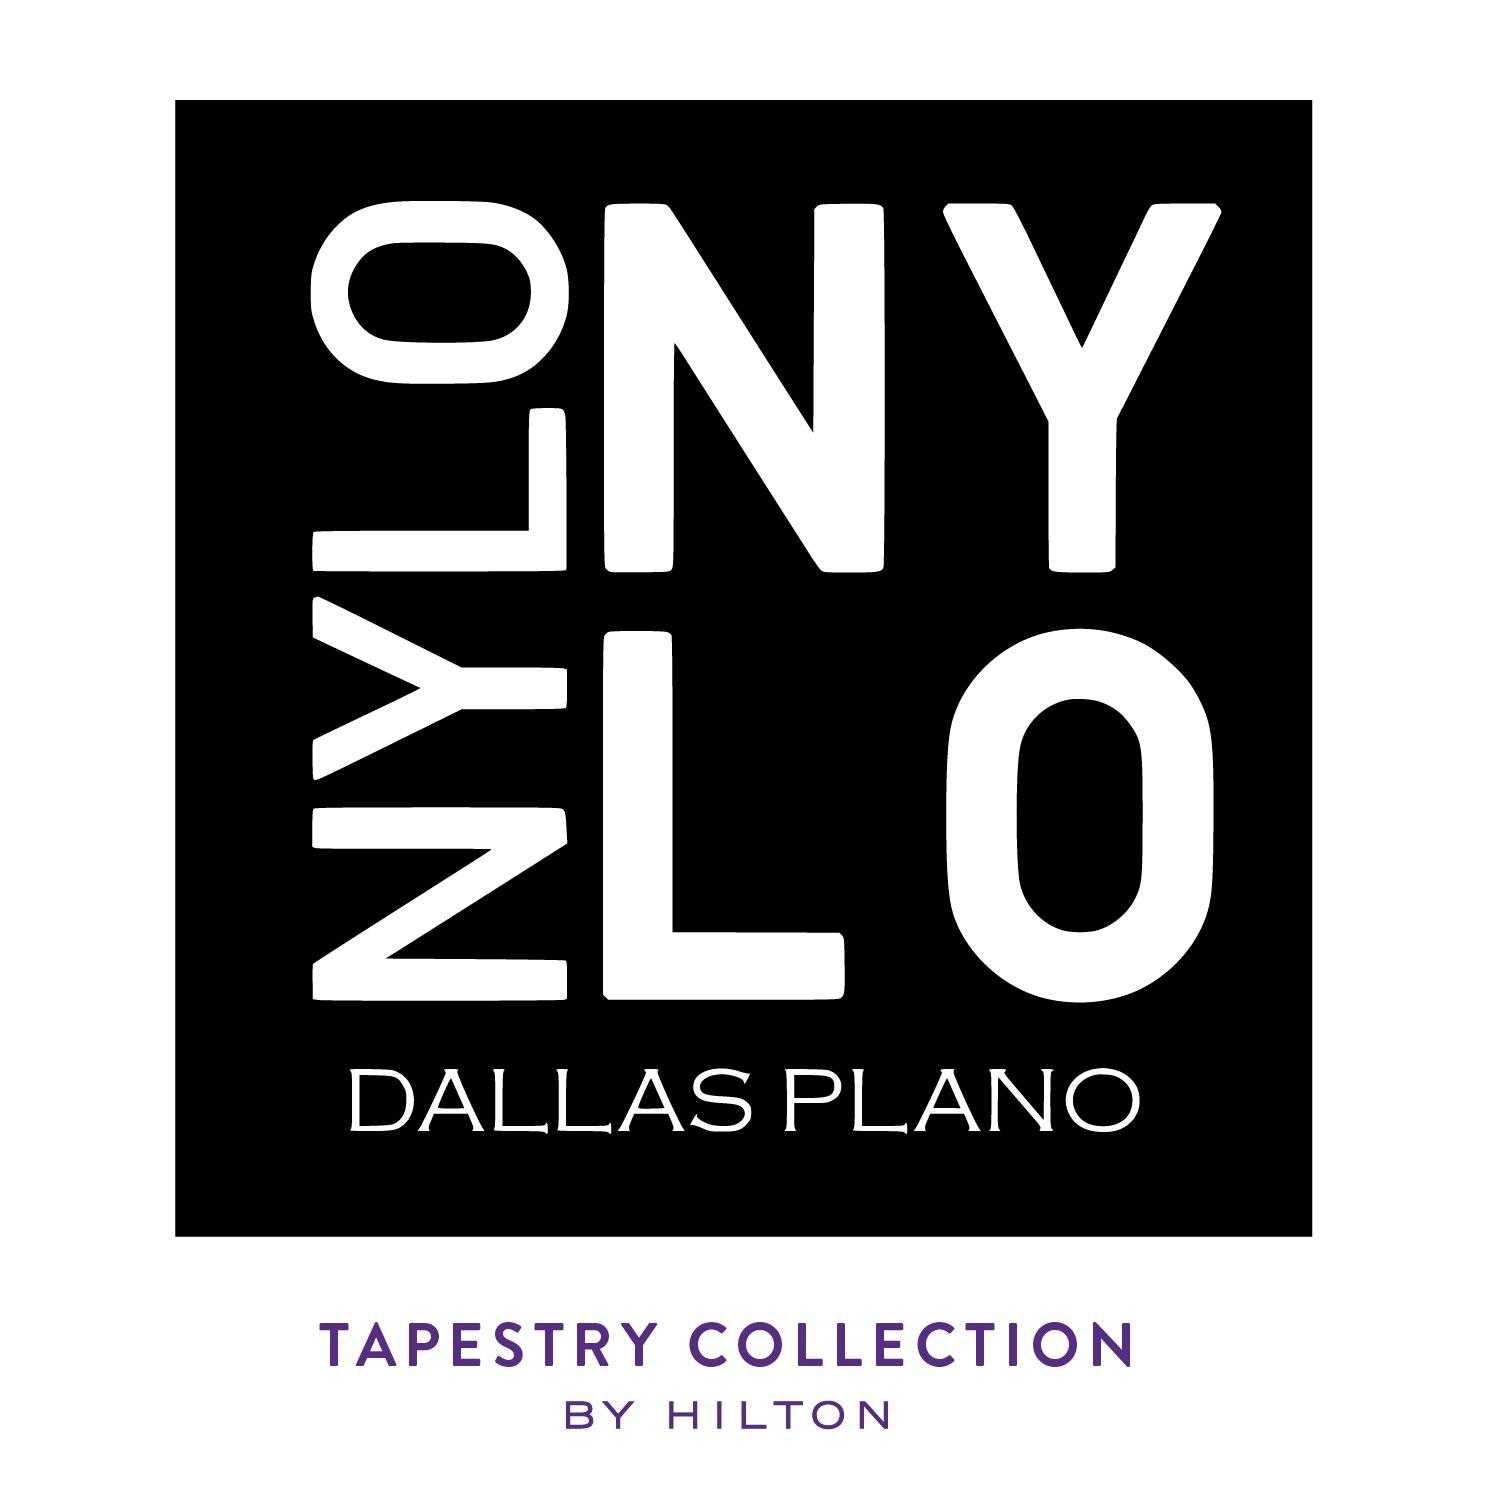 NYLO Dallas Plano Hotel, Tapestry Collection by Hilton